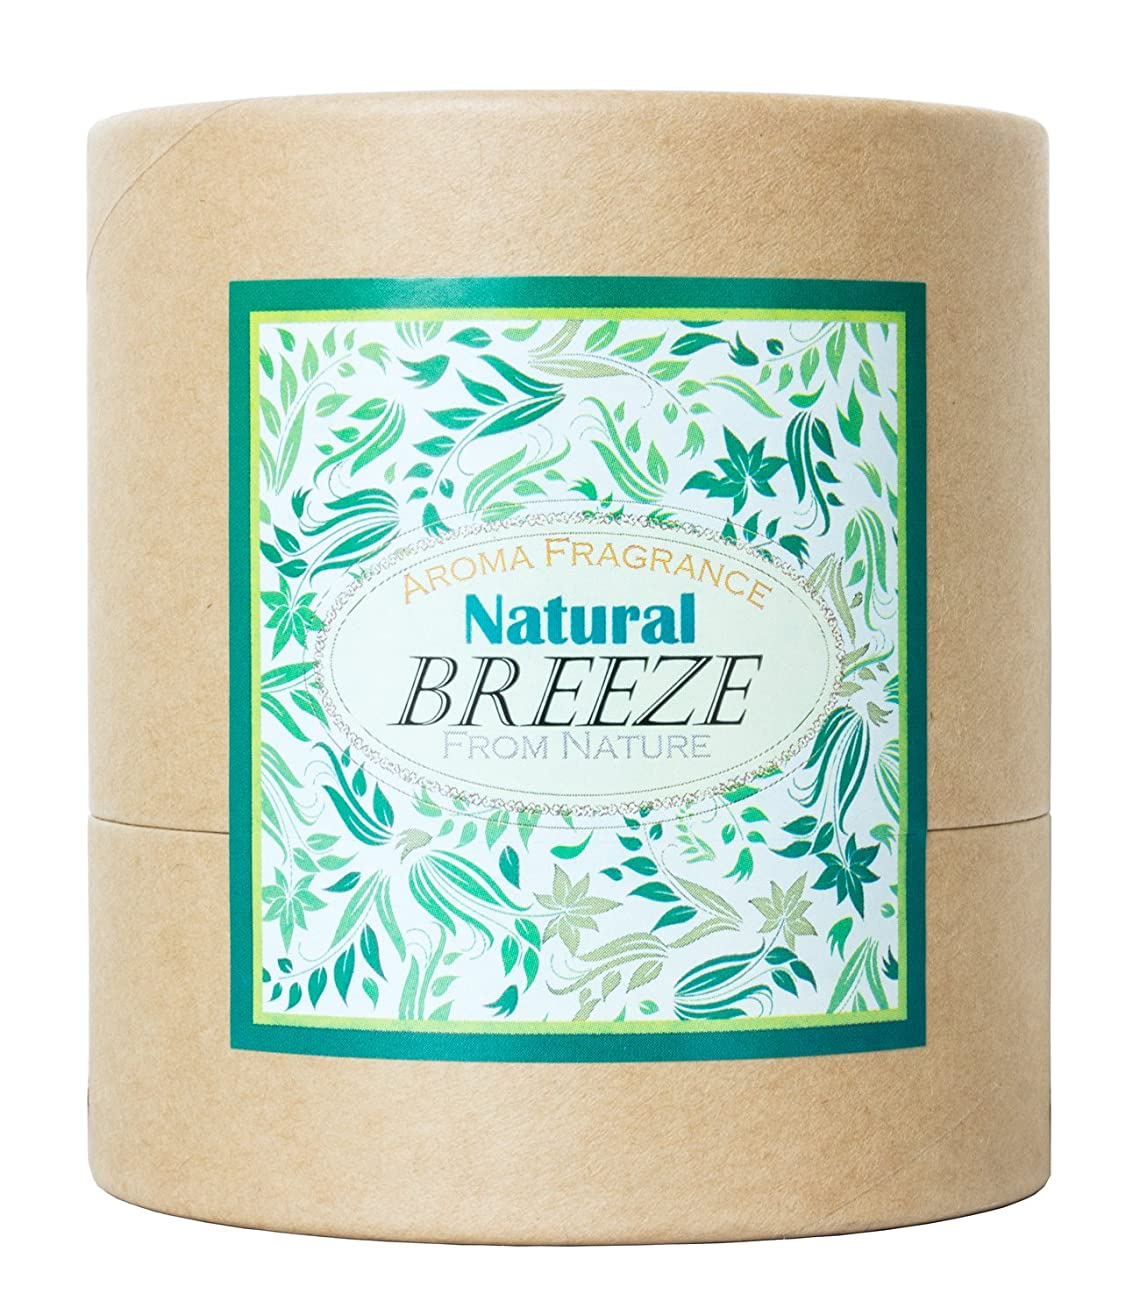 AROMA FRAGRANCE Natural BREEZE 自然の香り WRVC-720